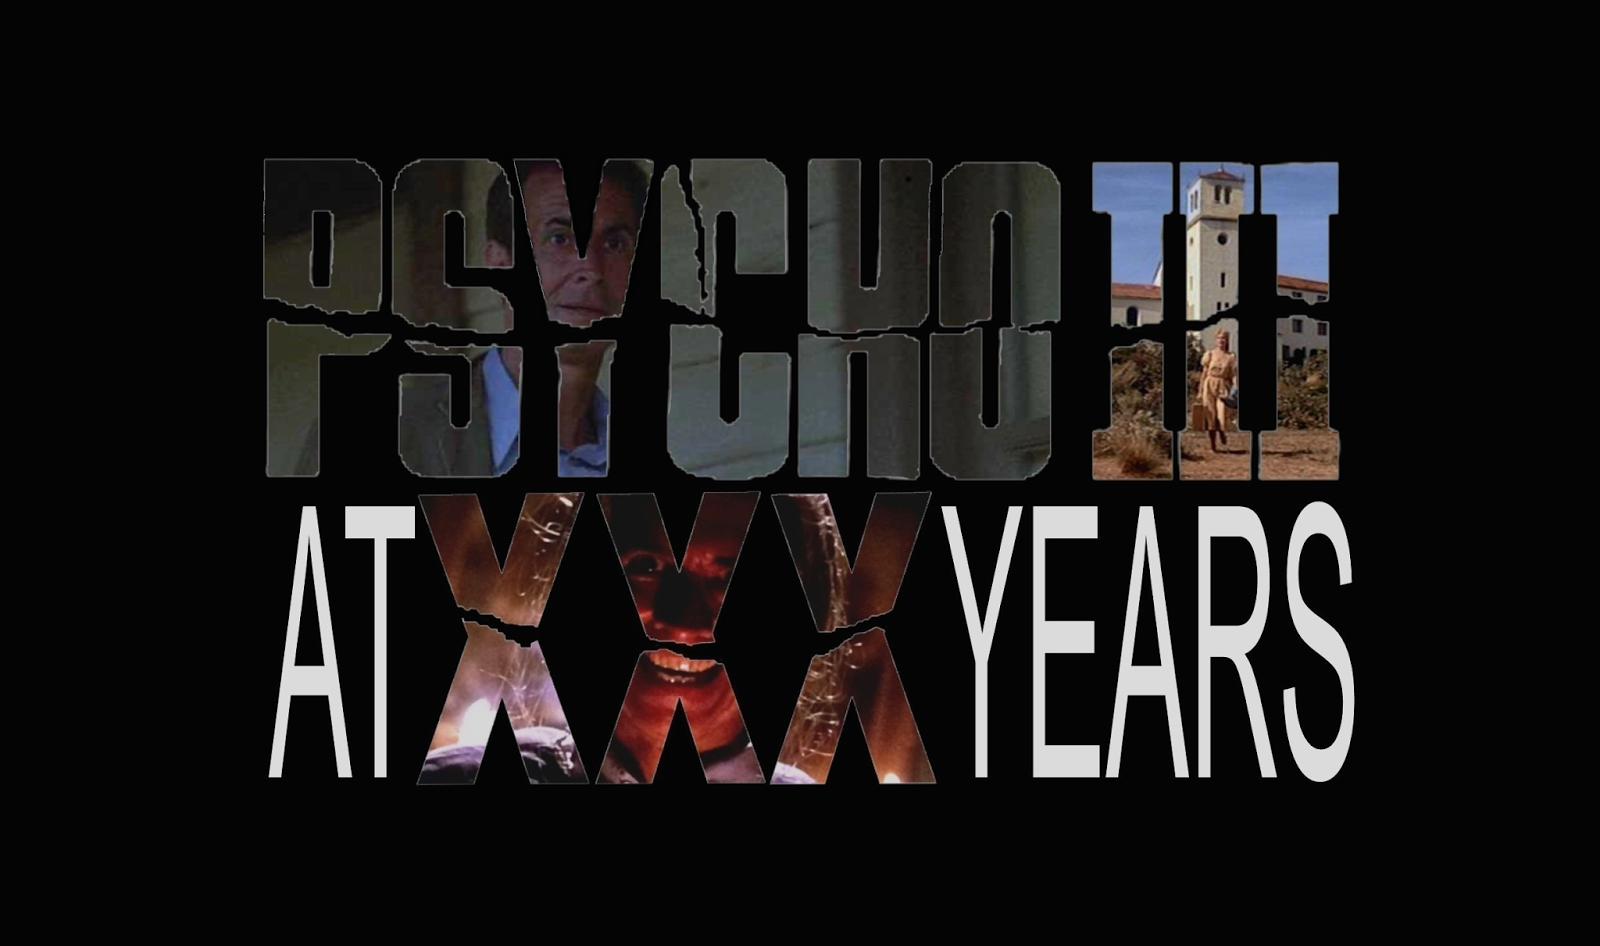 psycho essay the oceanic feeling springer user profile me essay me  slivers of cinema psycho iii at xxx years 2 2016 will mark 30 years since the